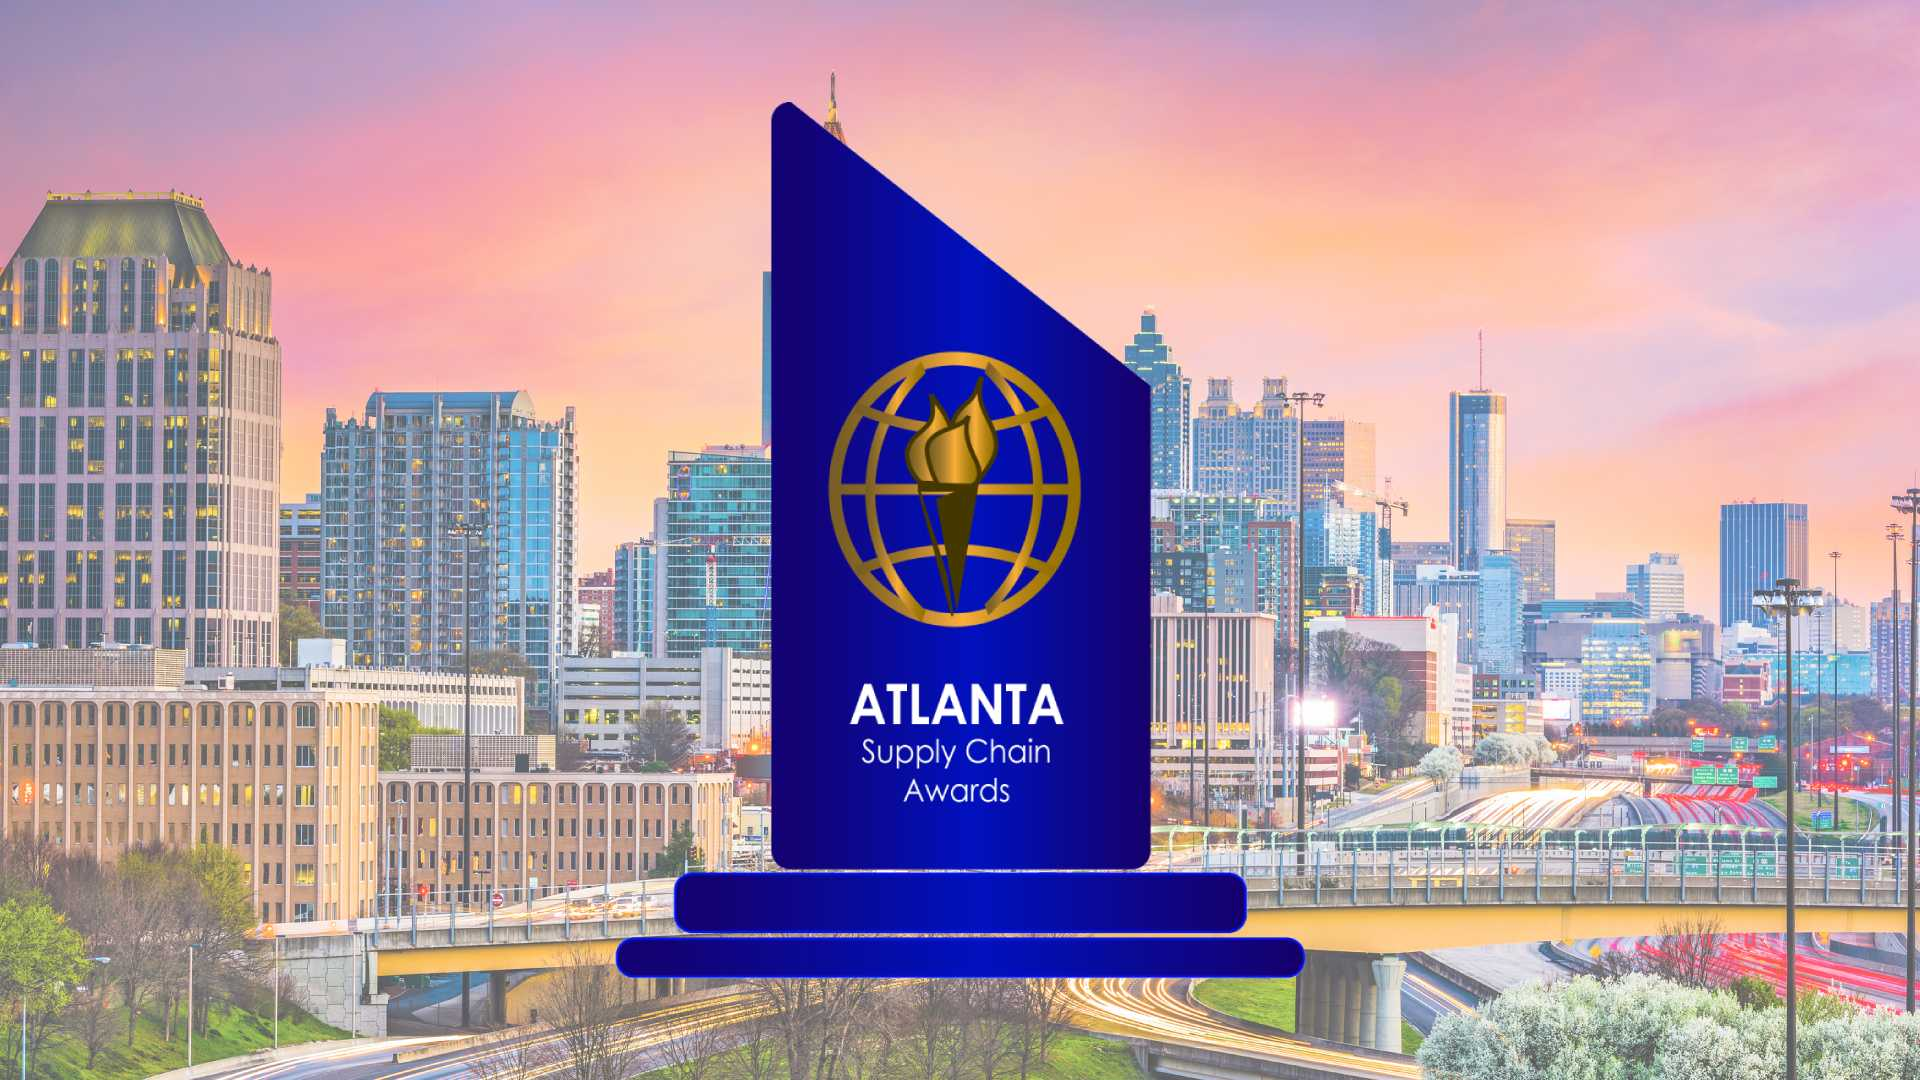 2019 Atlanta Supply Chain Awards